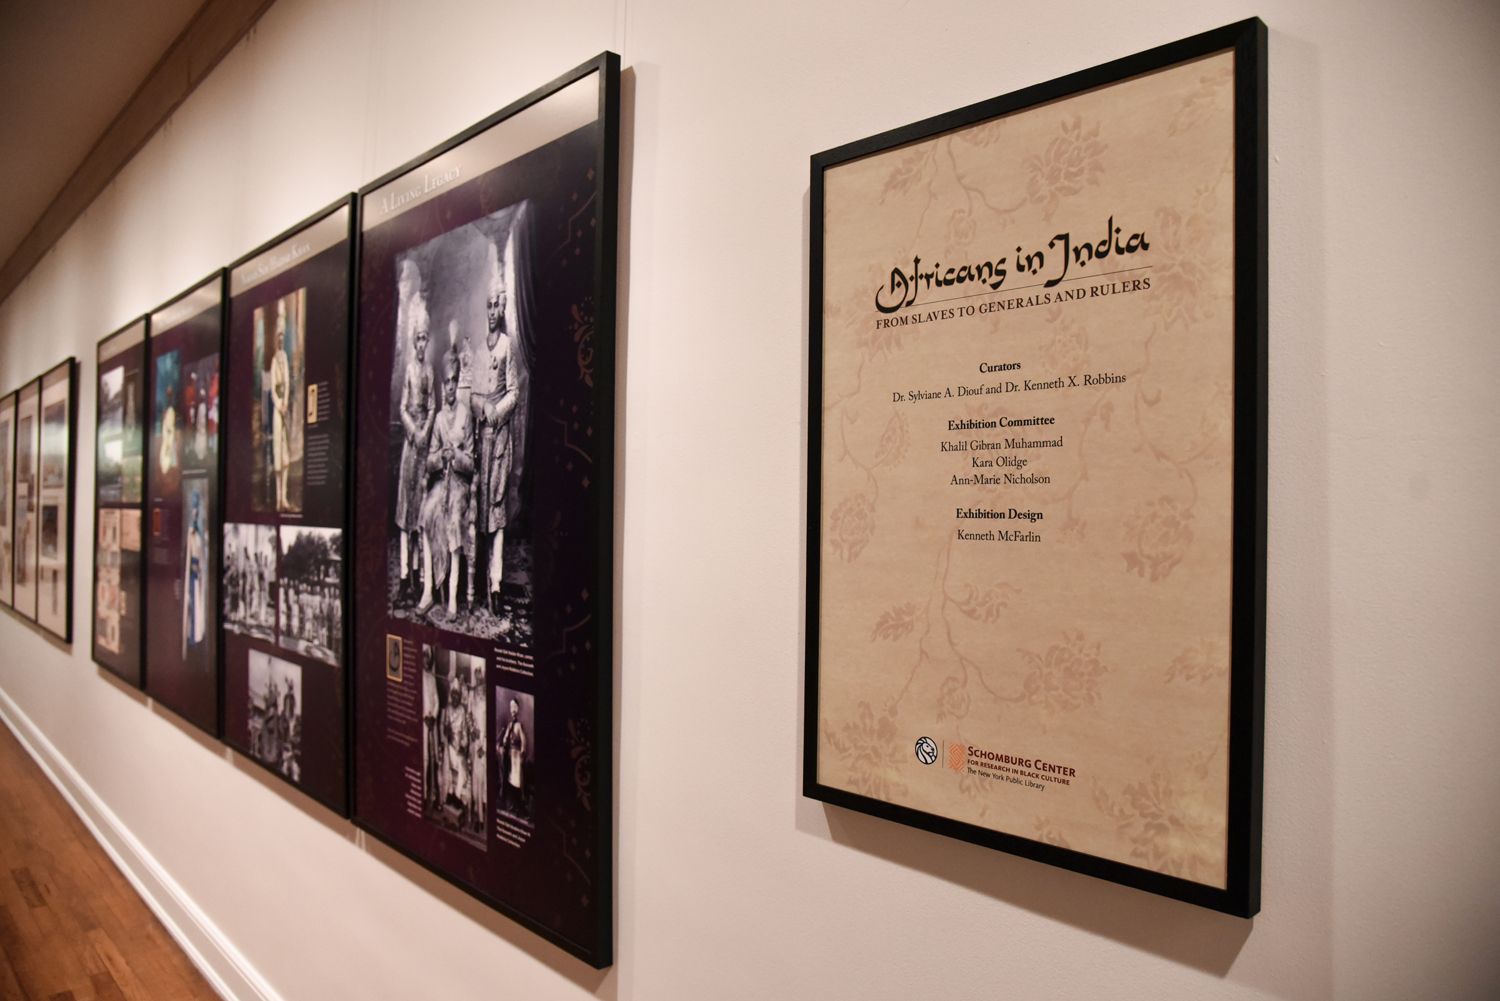 Frick Fine Arts debuts 'Africans in India' exhibit